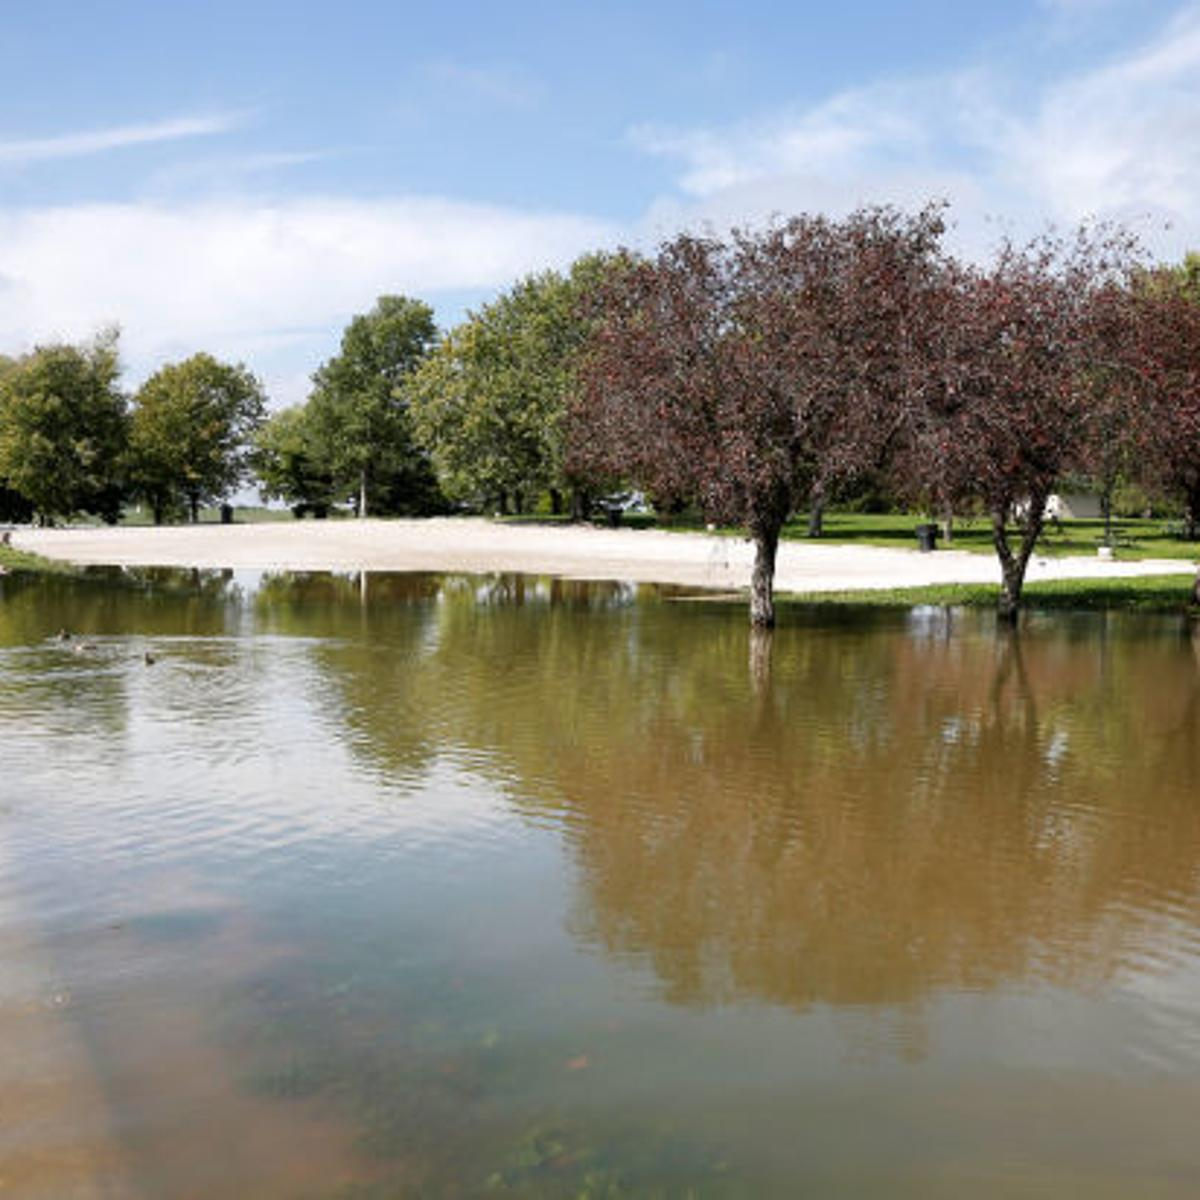 City of Lincoln settles lawsuits over heavy rain and sewer